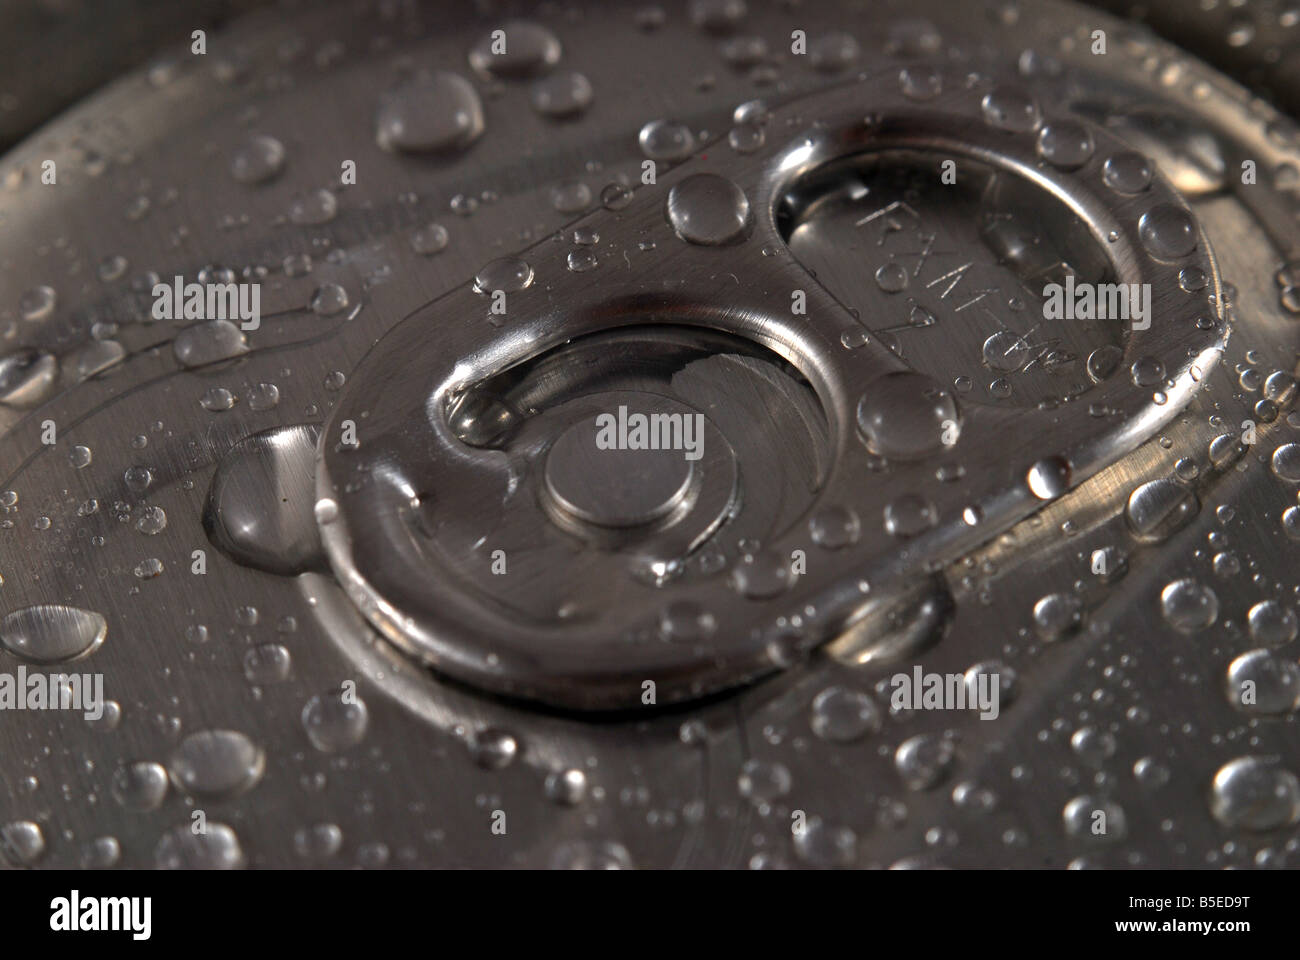 A fresh ring pull tab on a can - Stock Image